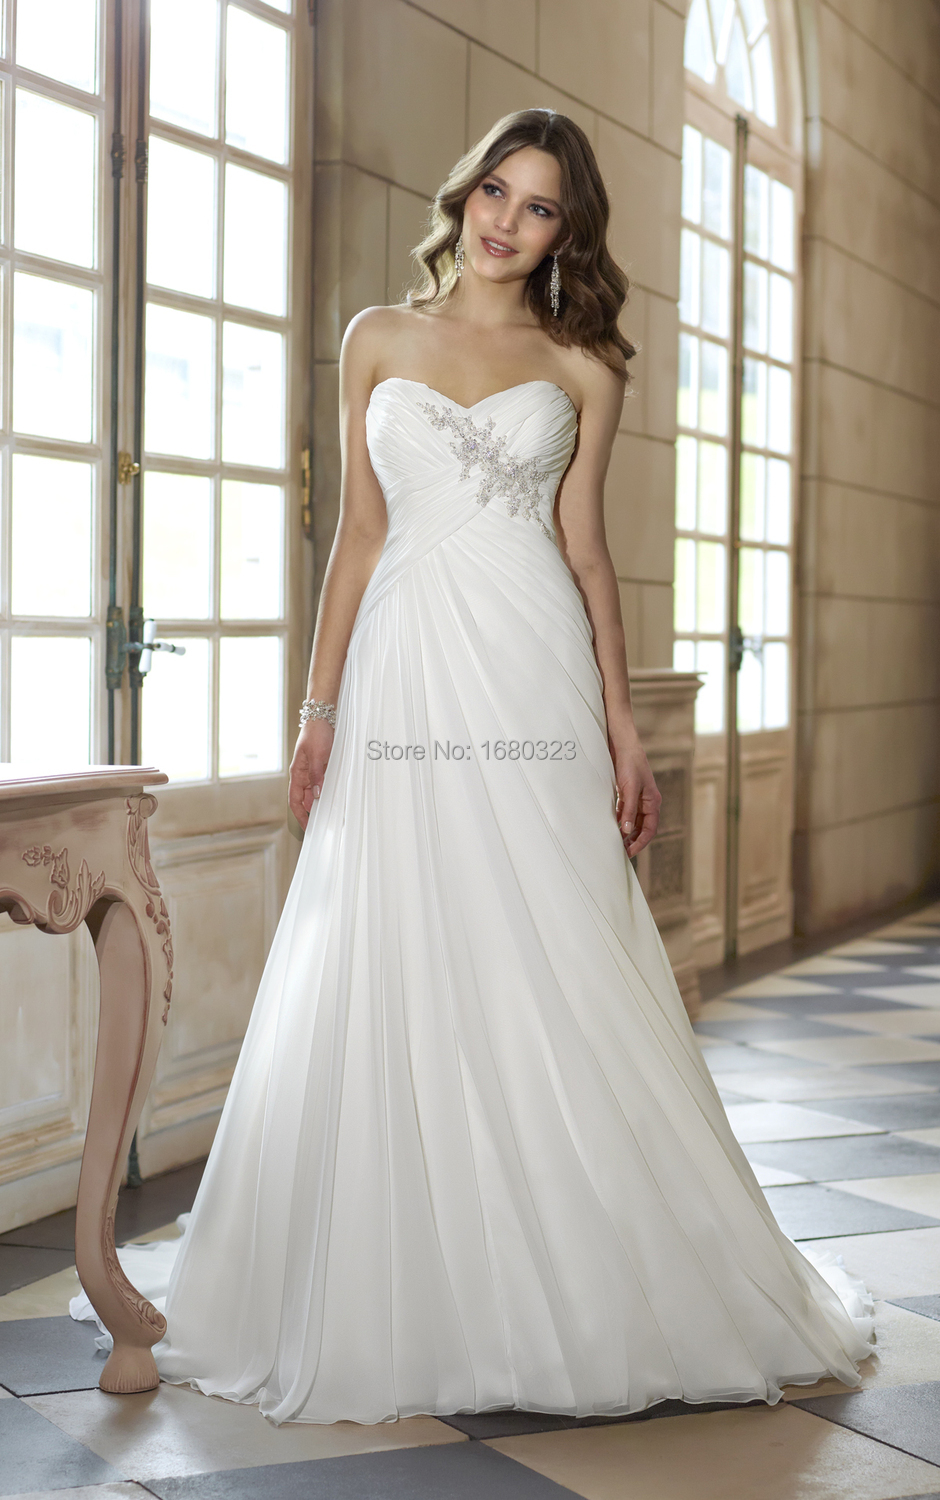 wedding dresses sweetheart neckline flowy flowy wedding dresses Wedding Dresses Sweetheart Neckline Flowy